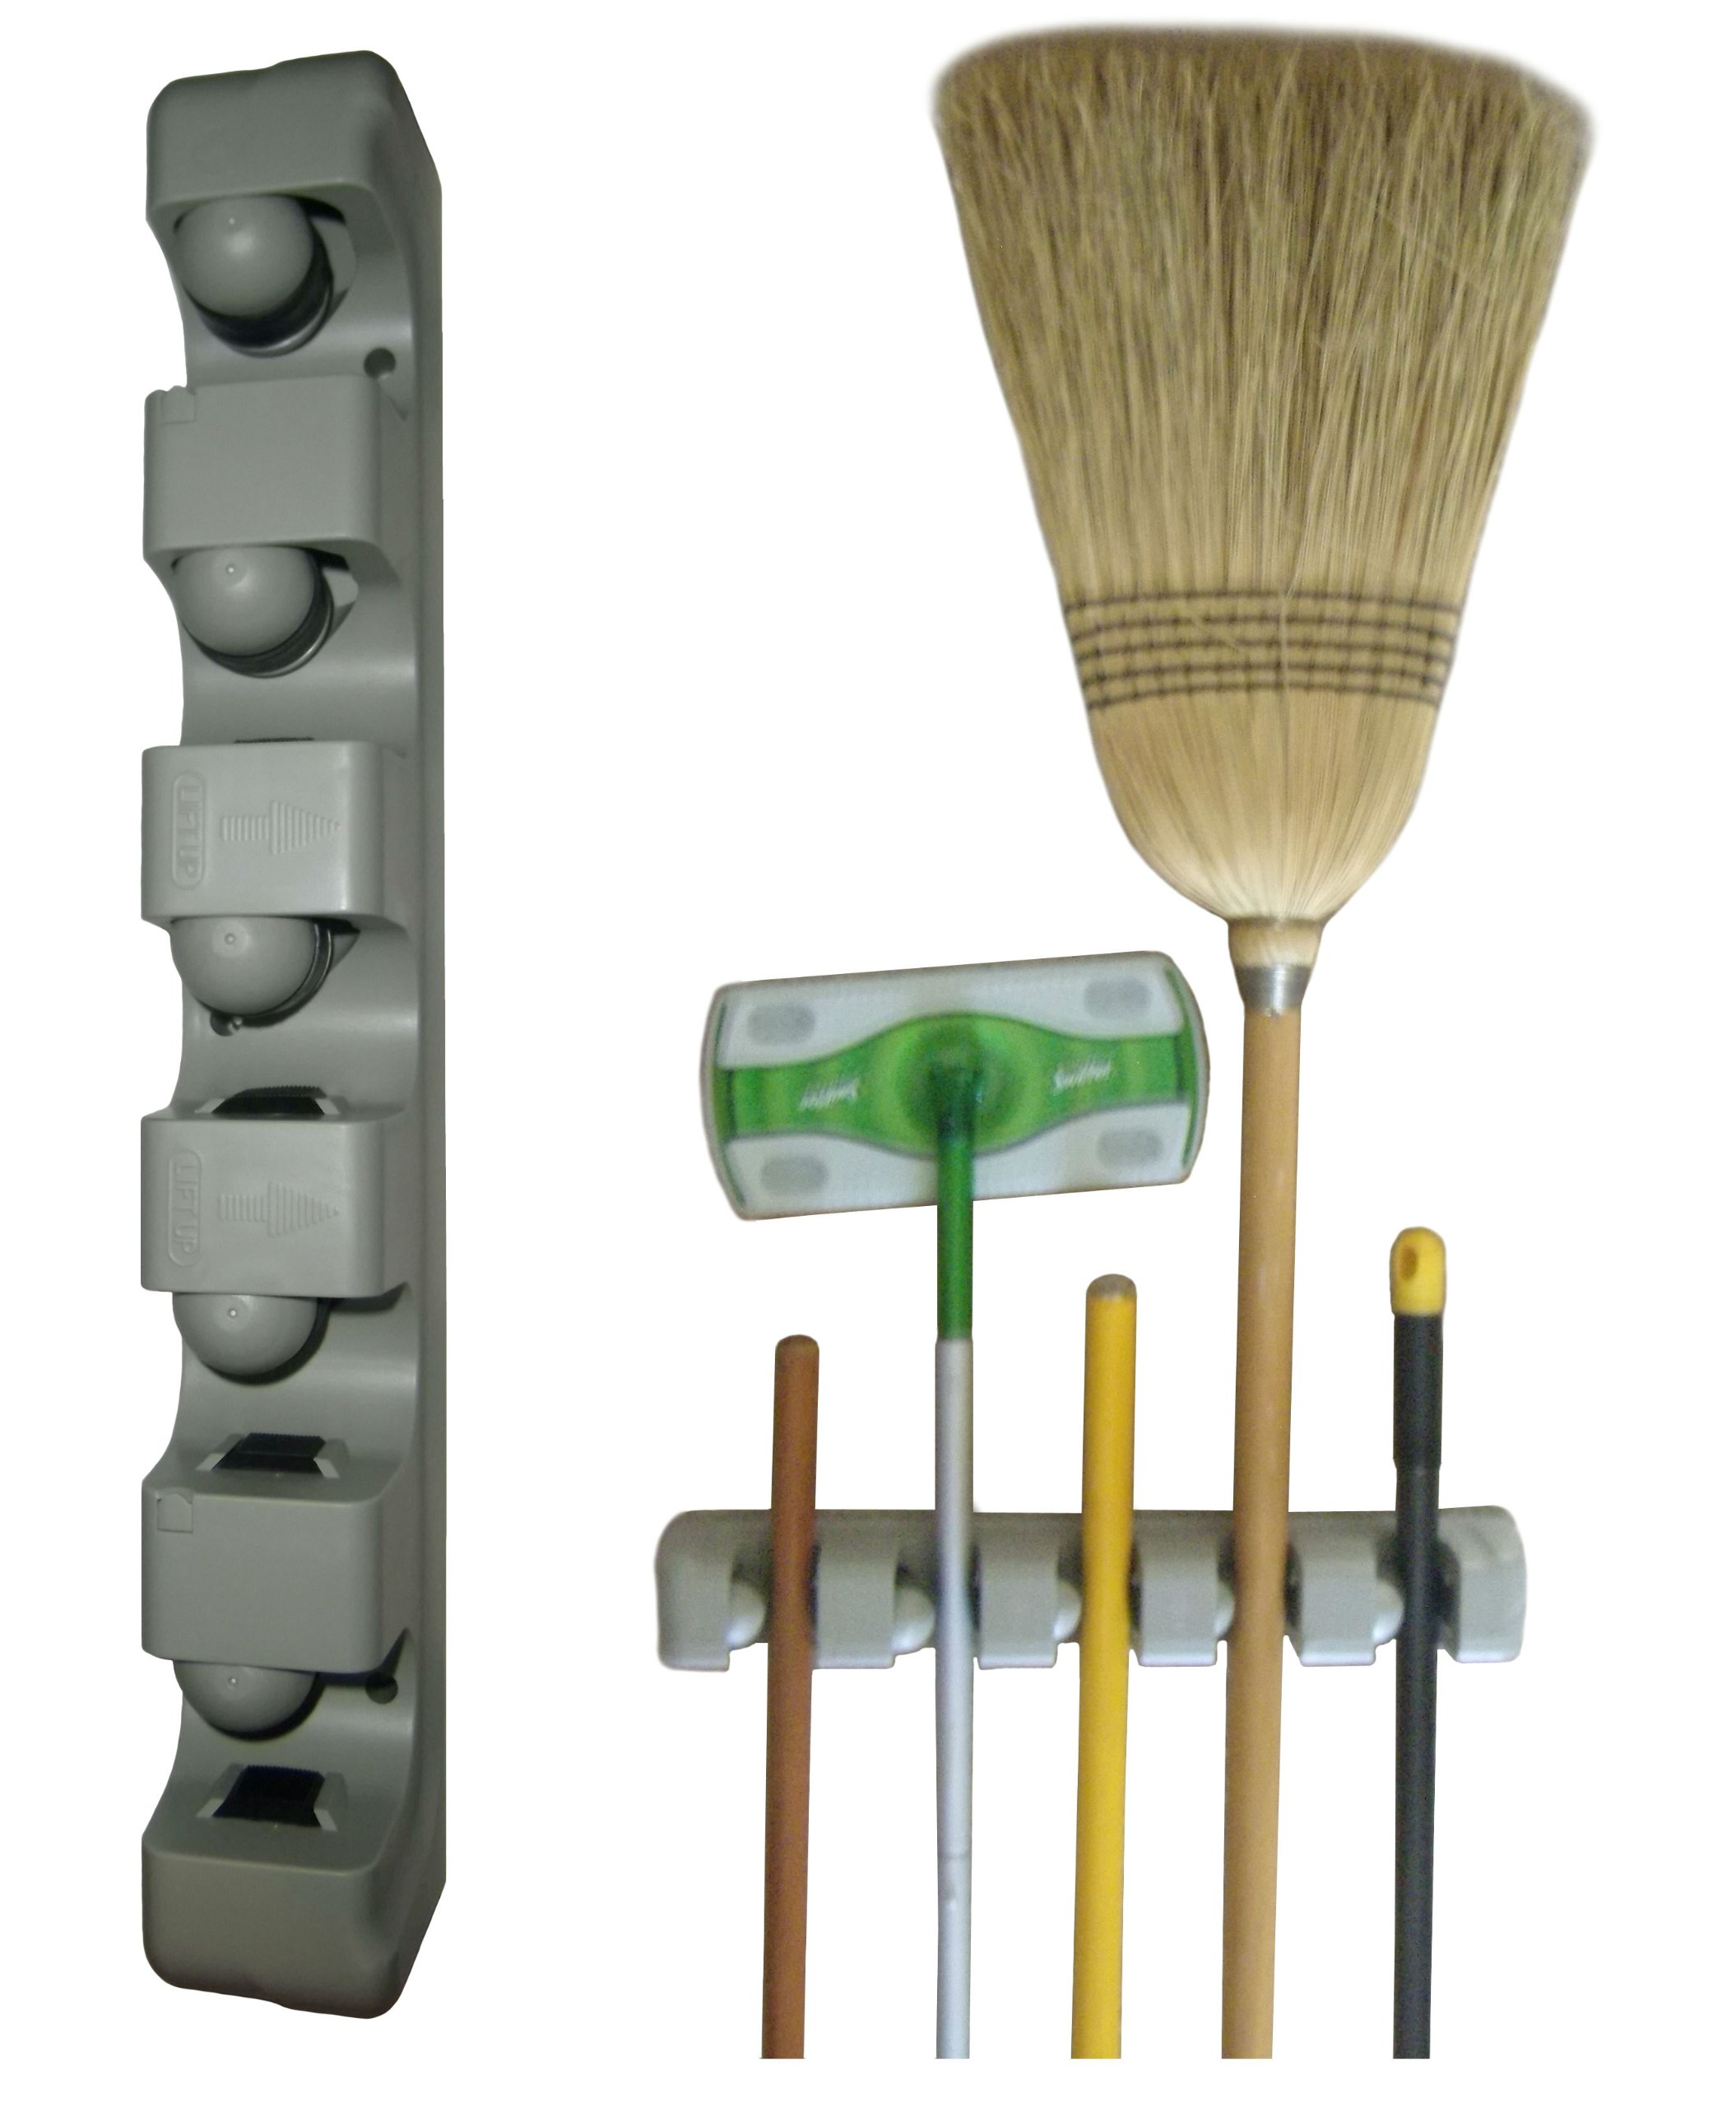 Wall Organizer - Plastic Mop, Broom, and Long-Handled Tool or Sports Equipment Holder System - Mount on the Wall in Your Home's Kitchen or Garage - Hang Items Securely - Great Storage Idea for Staying Organized - Best One Year Guarantee